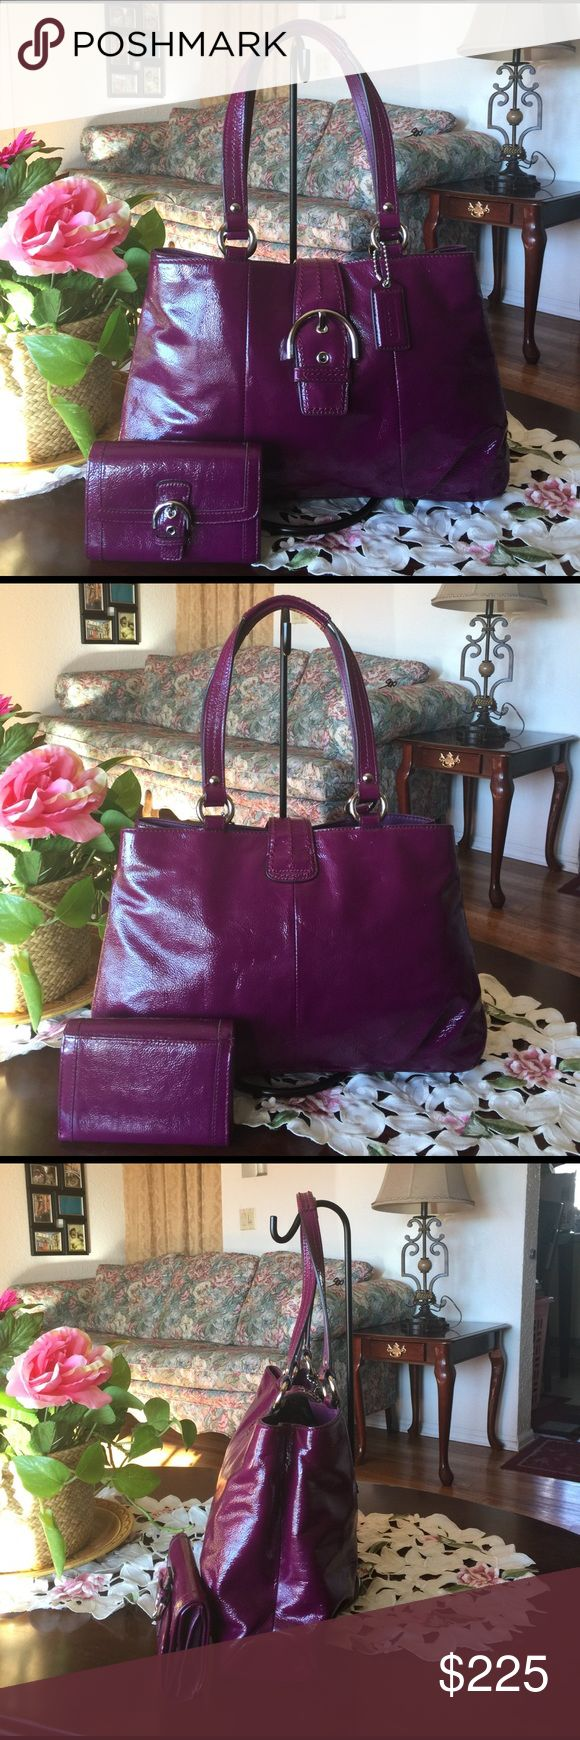 "COACH SOHO PATENT LEATHER PURSE with wallet ,#19711,color:plum with silvertone hardware  The lined interiors feature (3) main compartments.The center zips shut and a flap with the SOHO style buckle and magnetic snap secures all three togetherThere's a zippered pocket inside and two slip pockets. Coach's creed ,Inverted pleats on both the front and back near the bottom, and (4) protective 'feet' on the bottom.Demension:15"" (L) x 9.5"" (H) x 4.75"" (W). Strap drop 8.5"" little ink mark on the…"